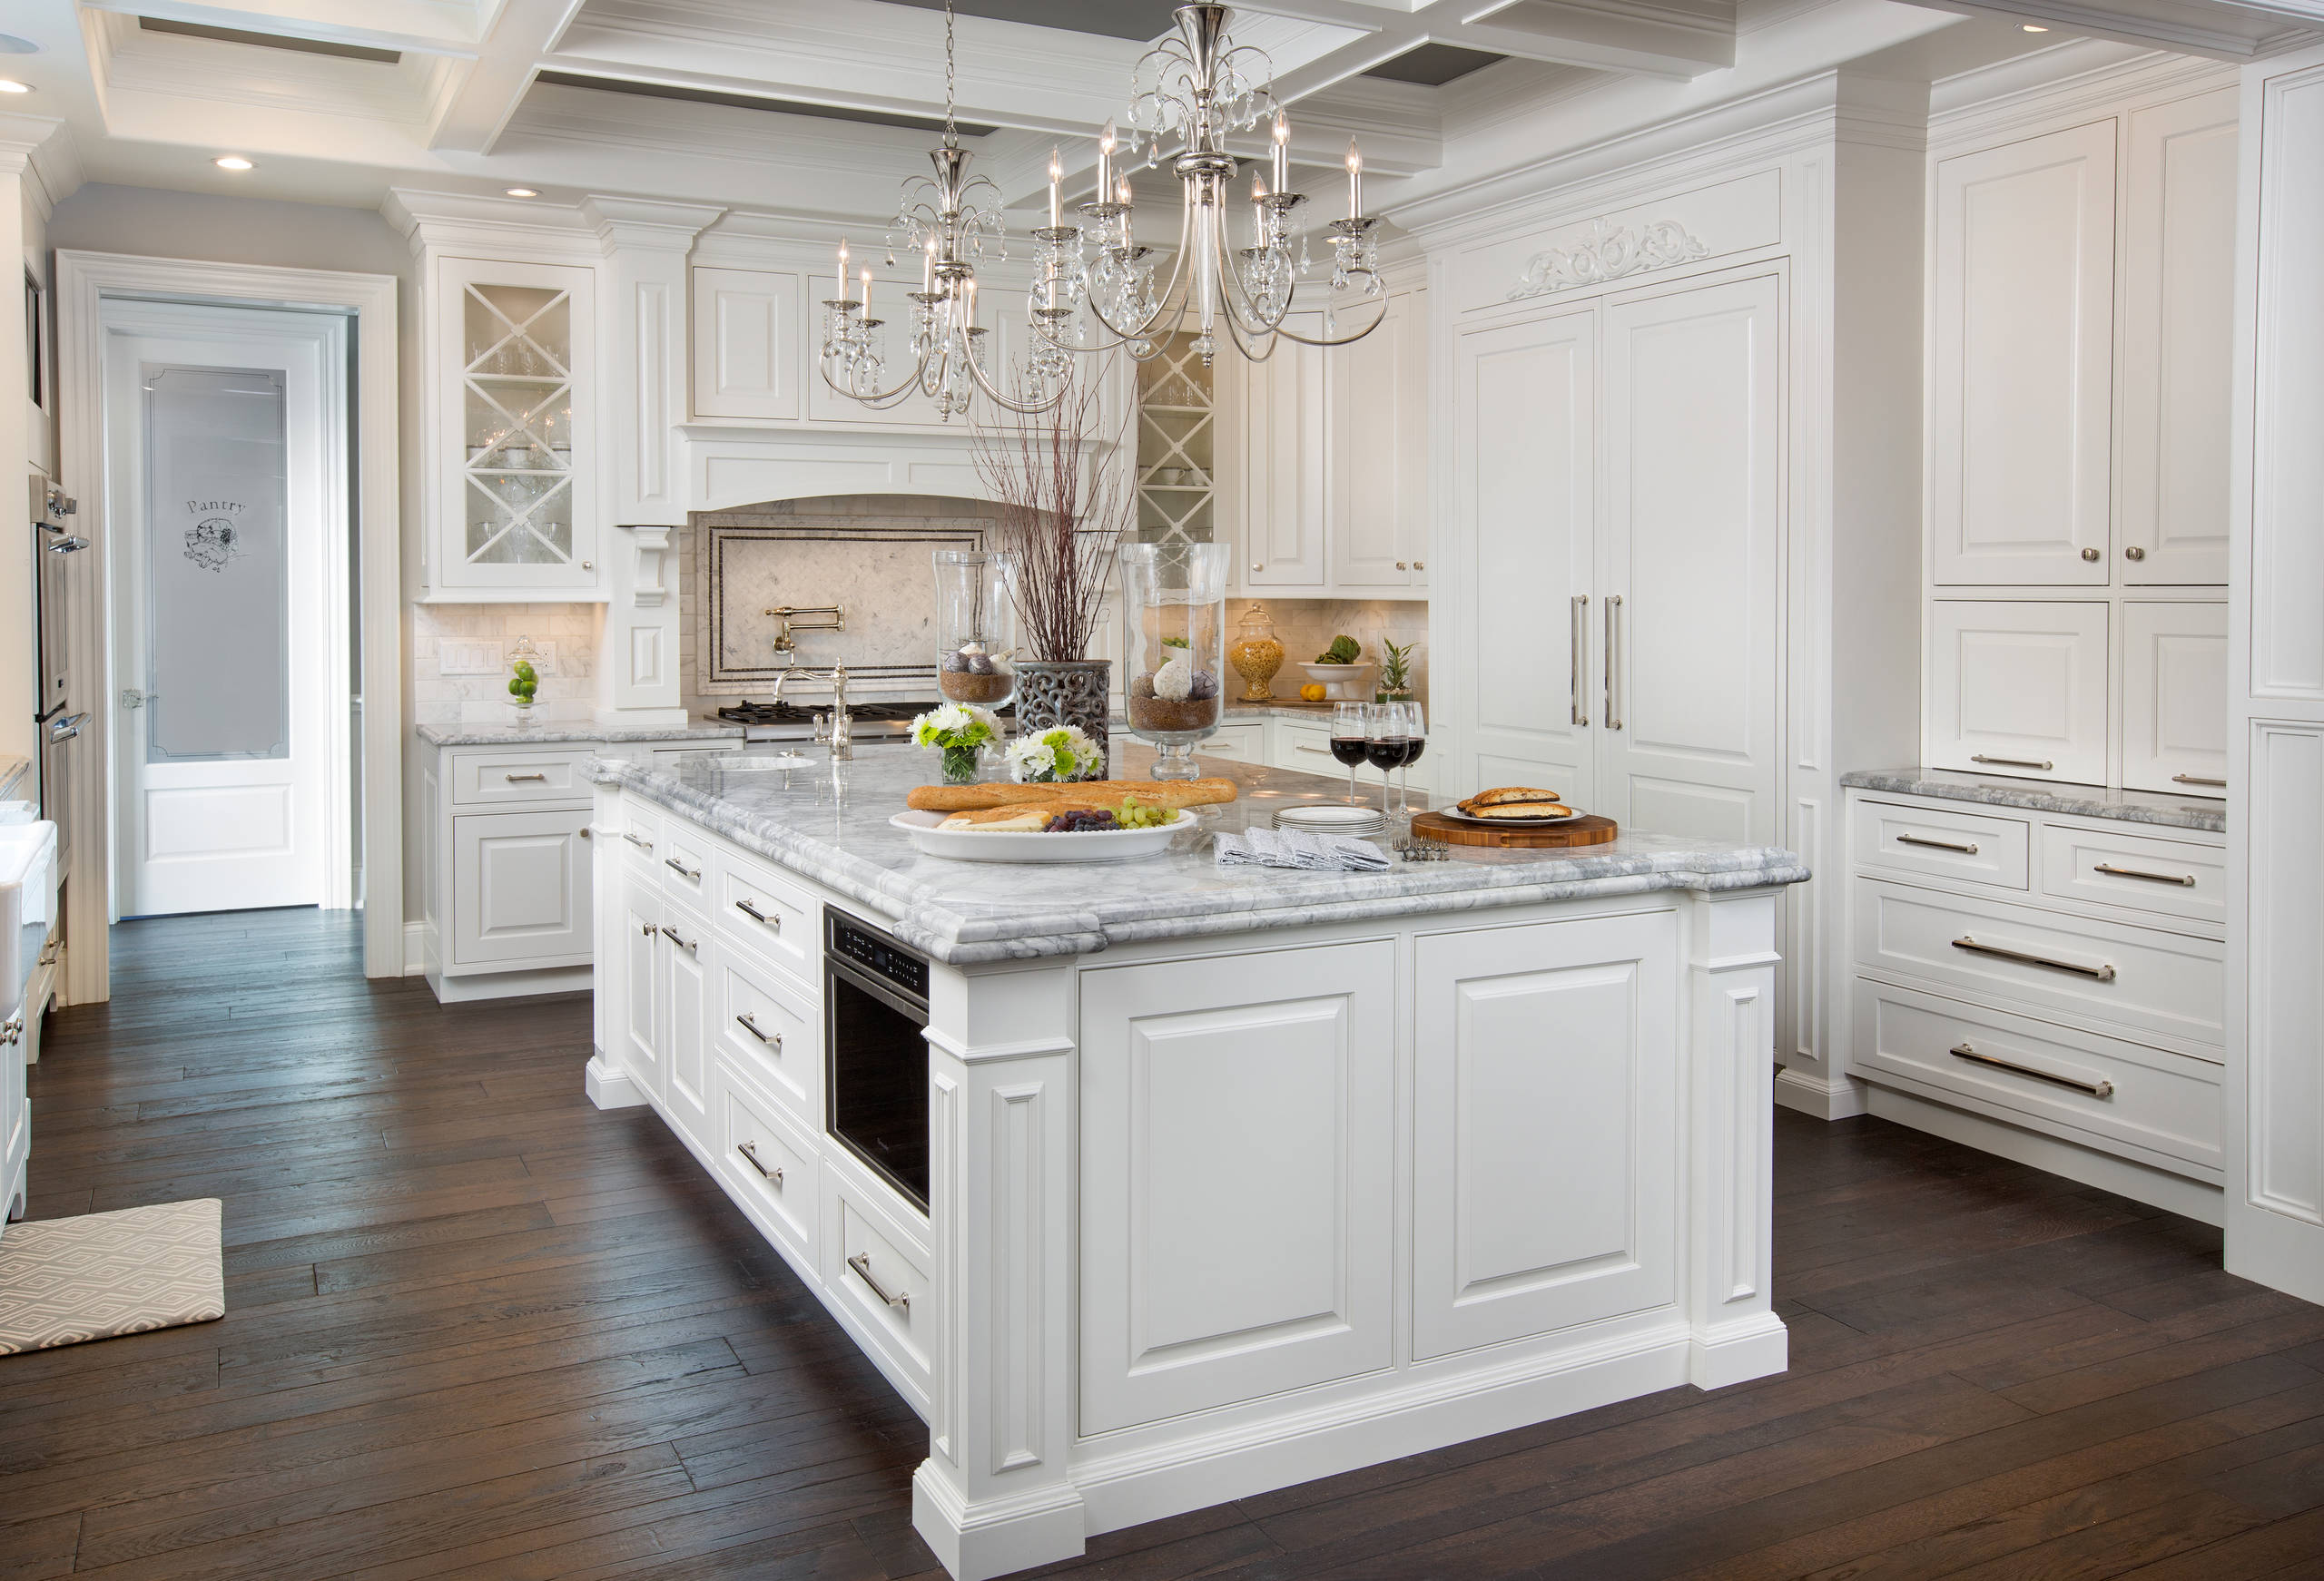 7 steps to decorating your dream kitchen make sure to for Dream kitchen designs